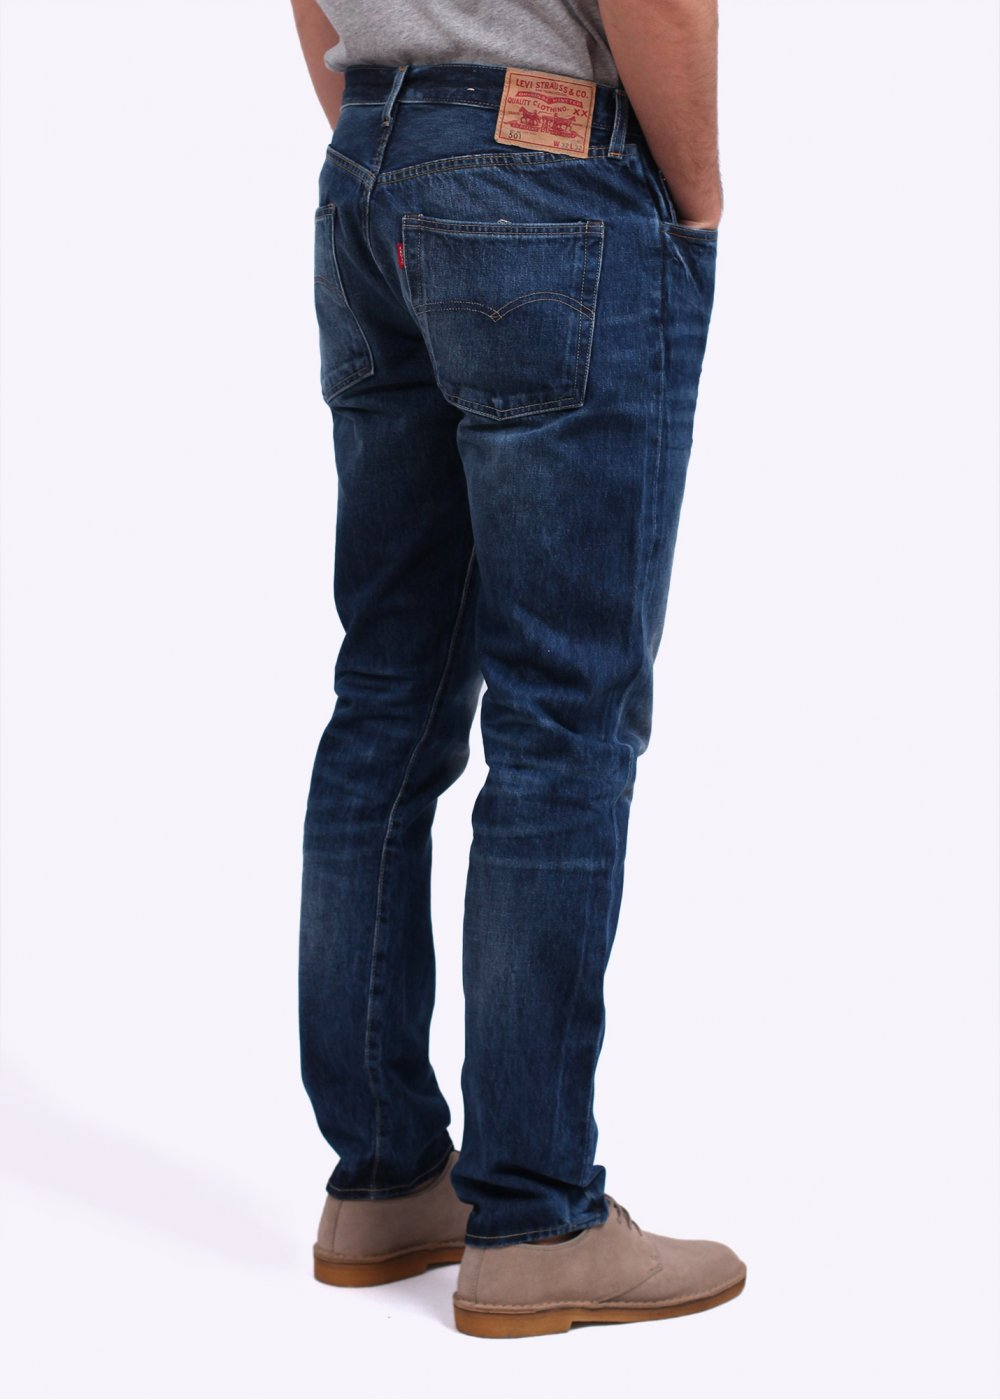 A Western Take on a Slim neo-craft.gq could have been your old favorite for years now. This bootcut jean has a Western slim fit that gives a little more room than a modern day slim fit jean. Vintage finishing has an instant broken-in appeal.